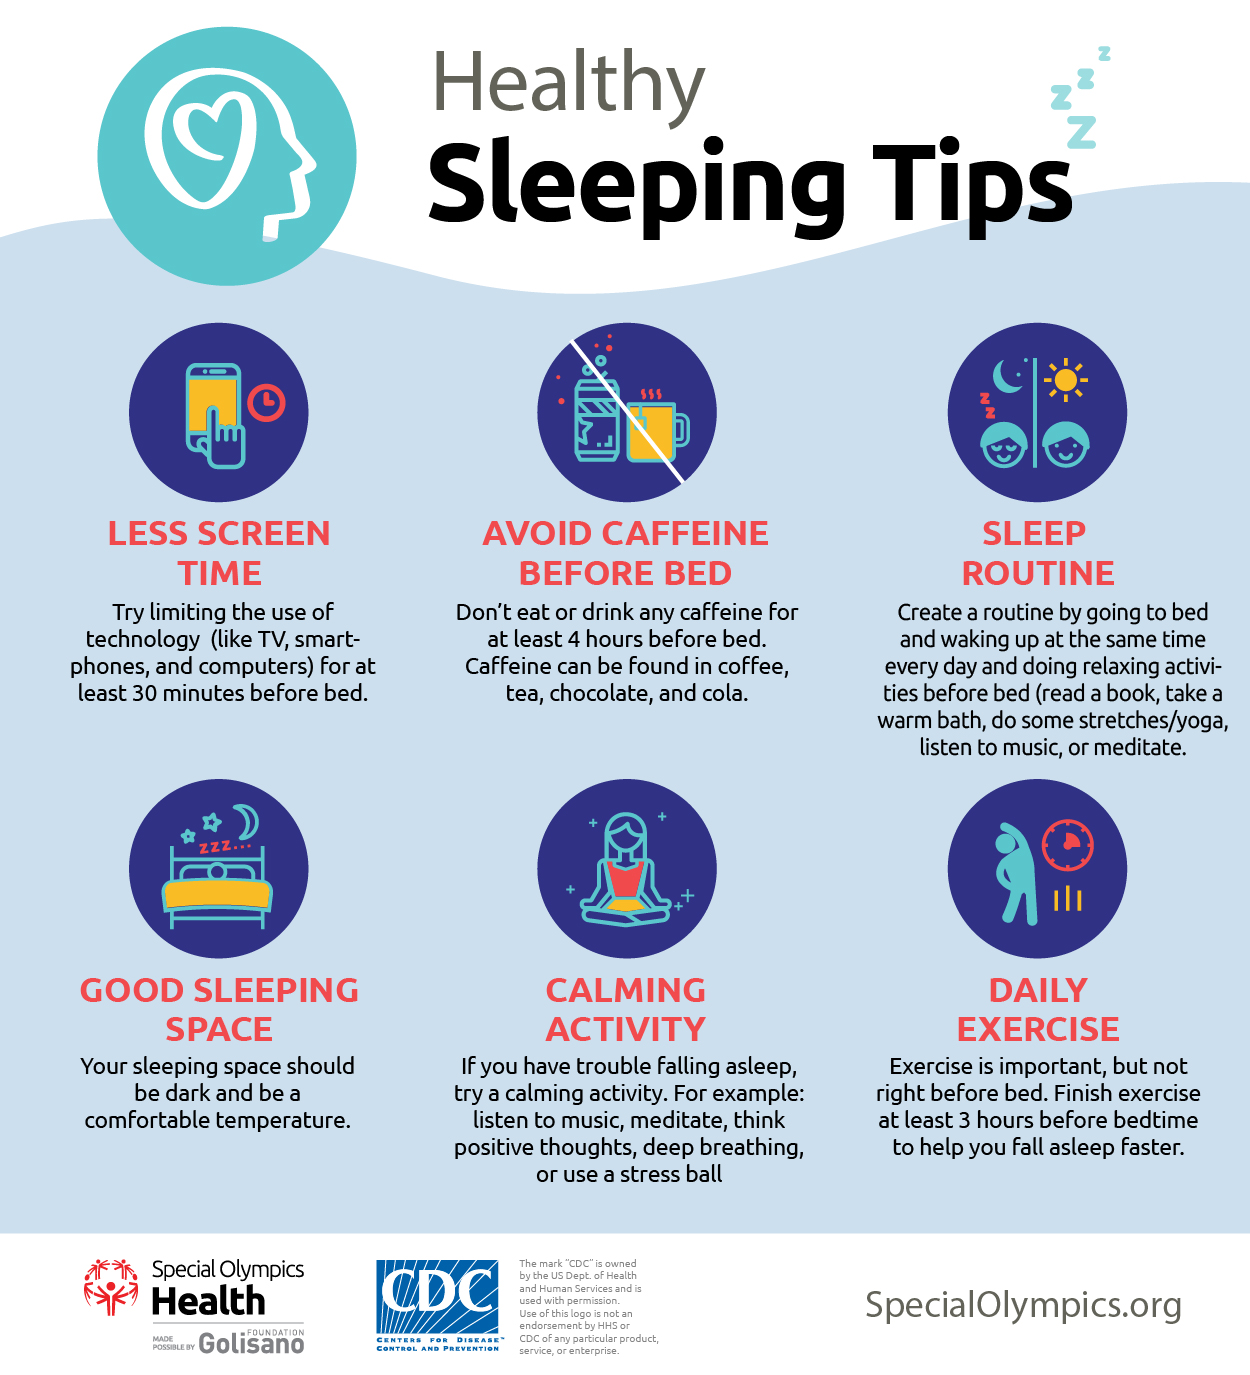 Healthy Sleeping Tips